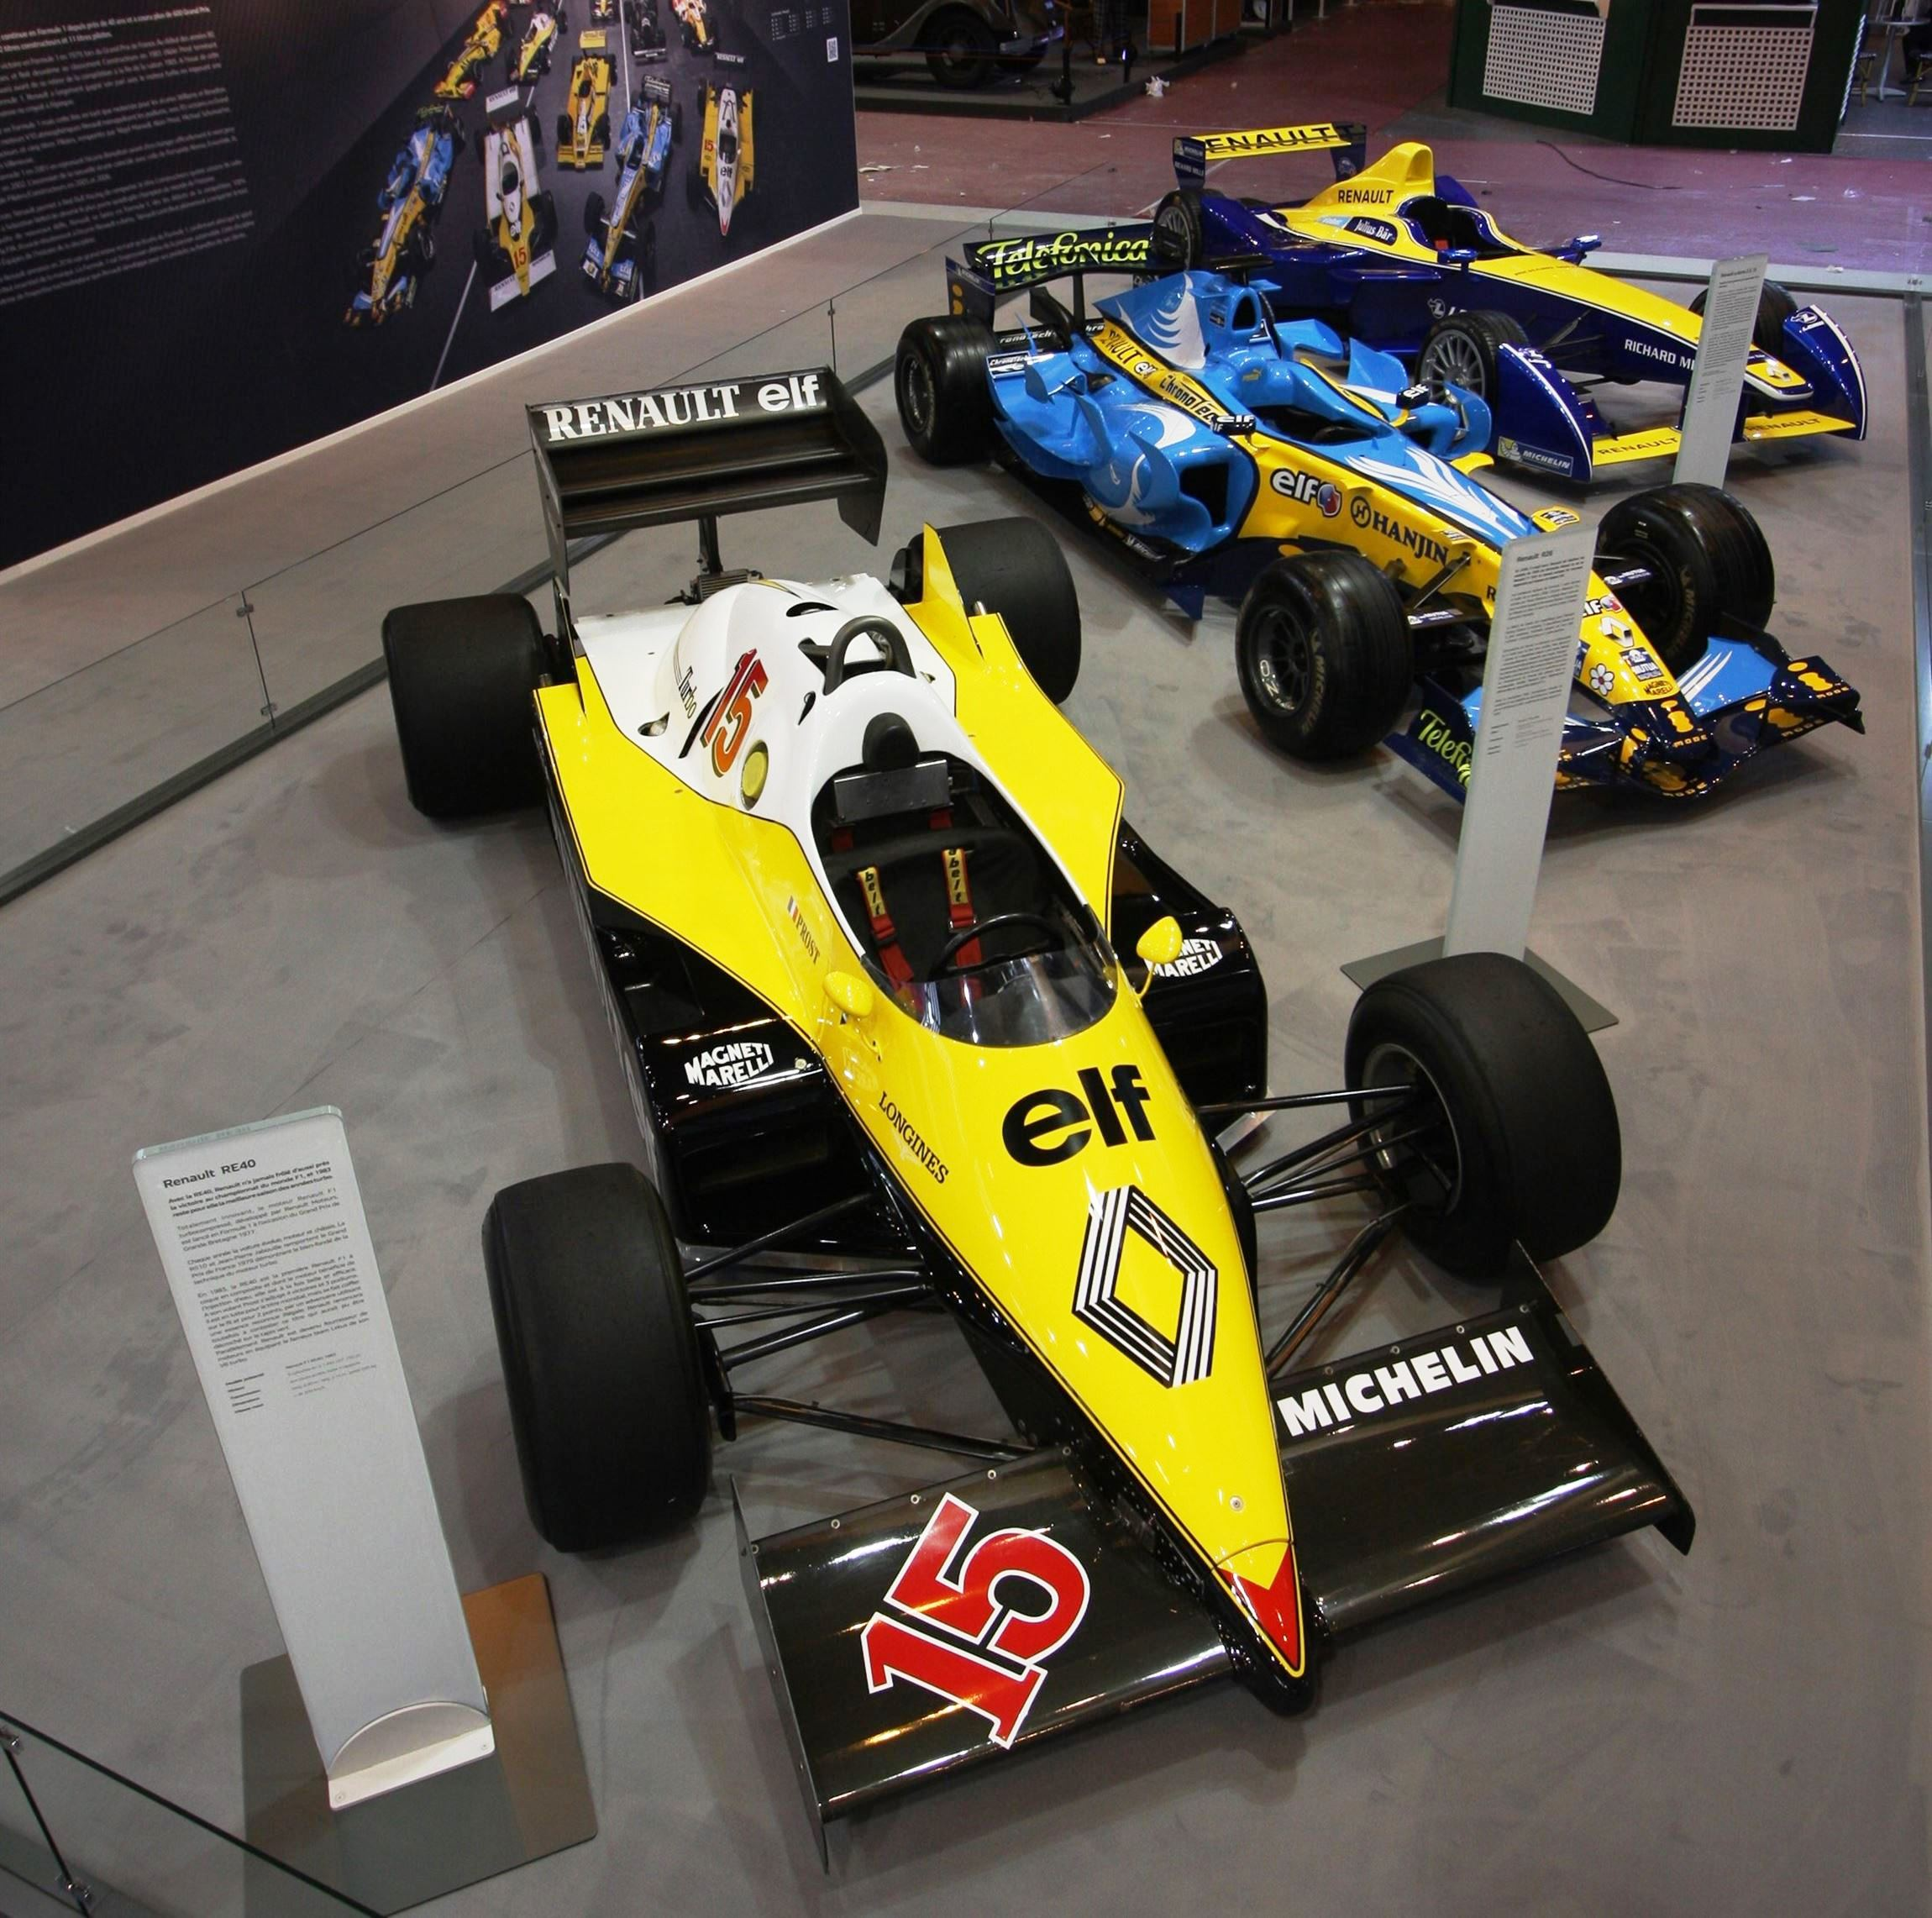 Renault Formula 1: RENAULT SPORT Signs INFINITI And Bell & Ross For 2016 F1